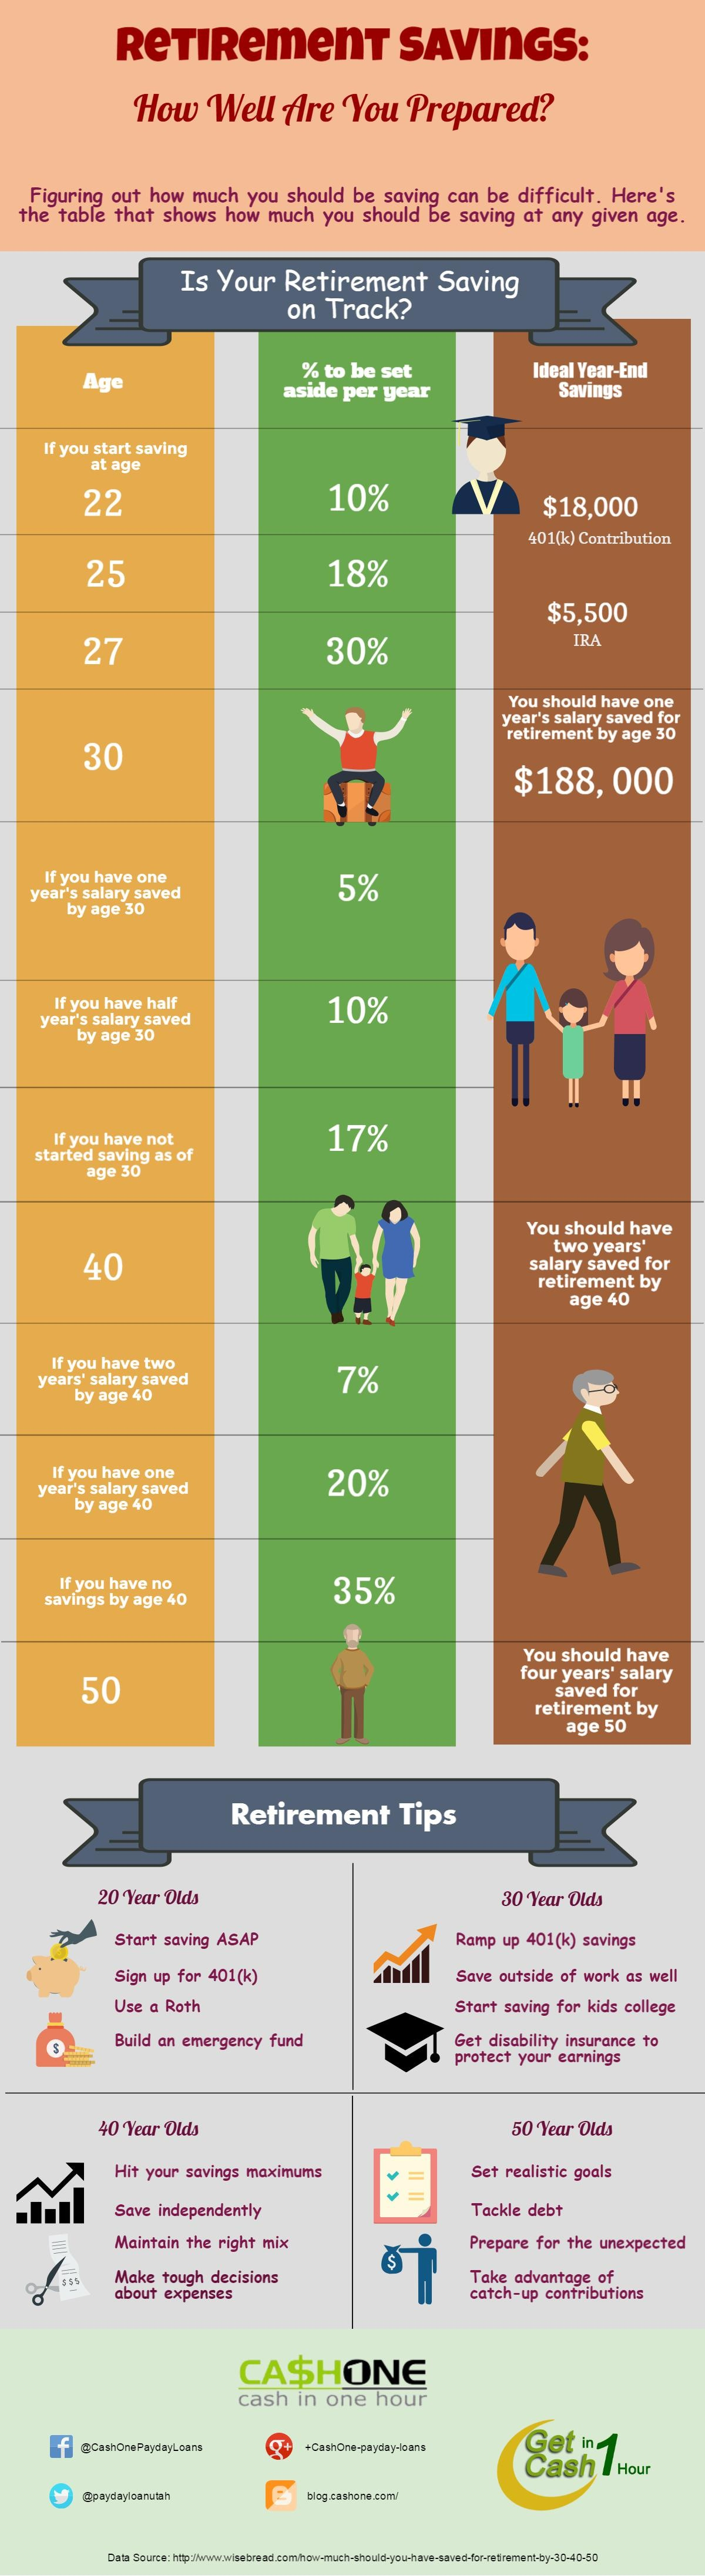 Retirement Savings - How Well Are You Prepared